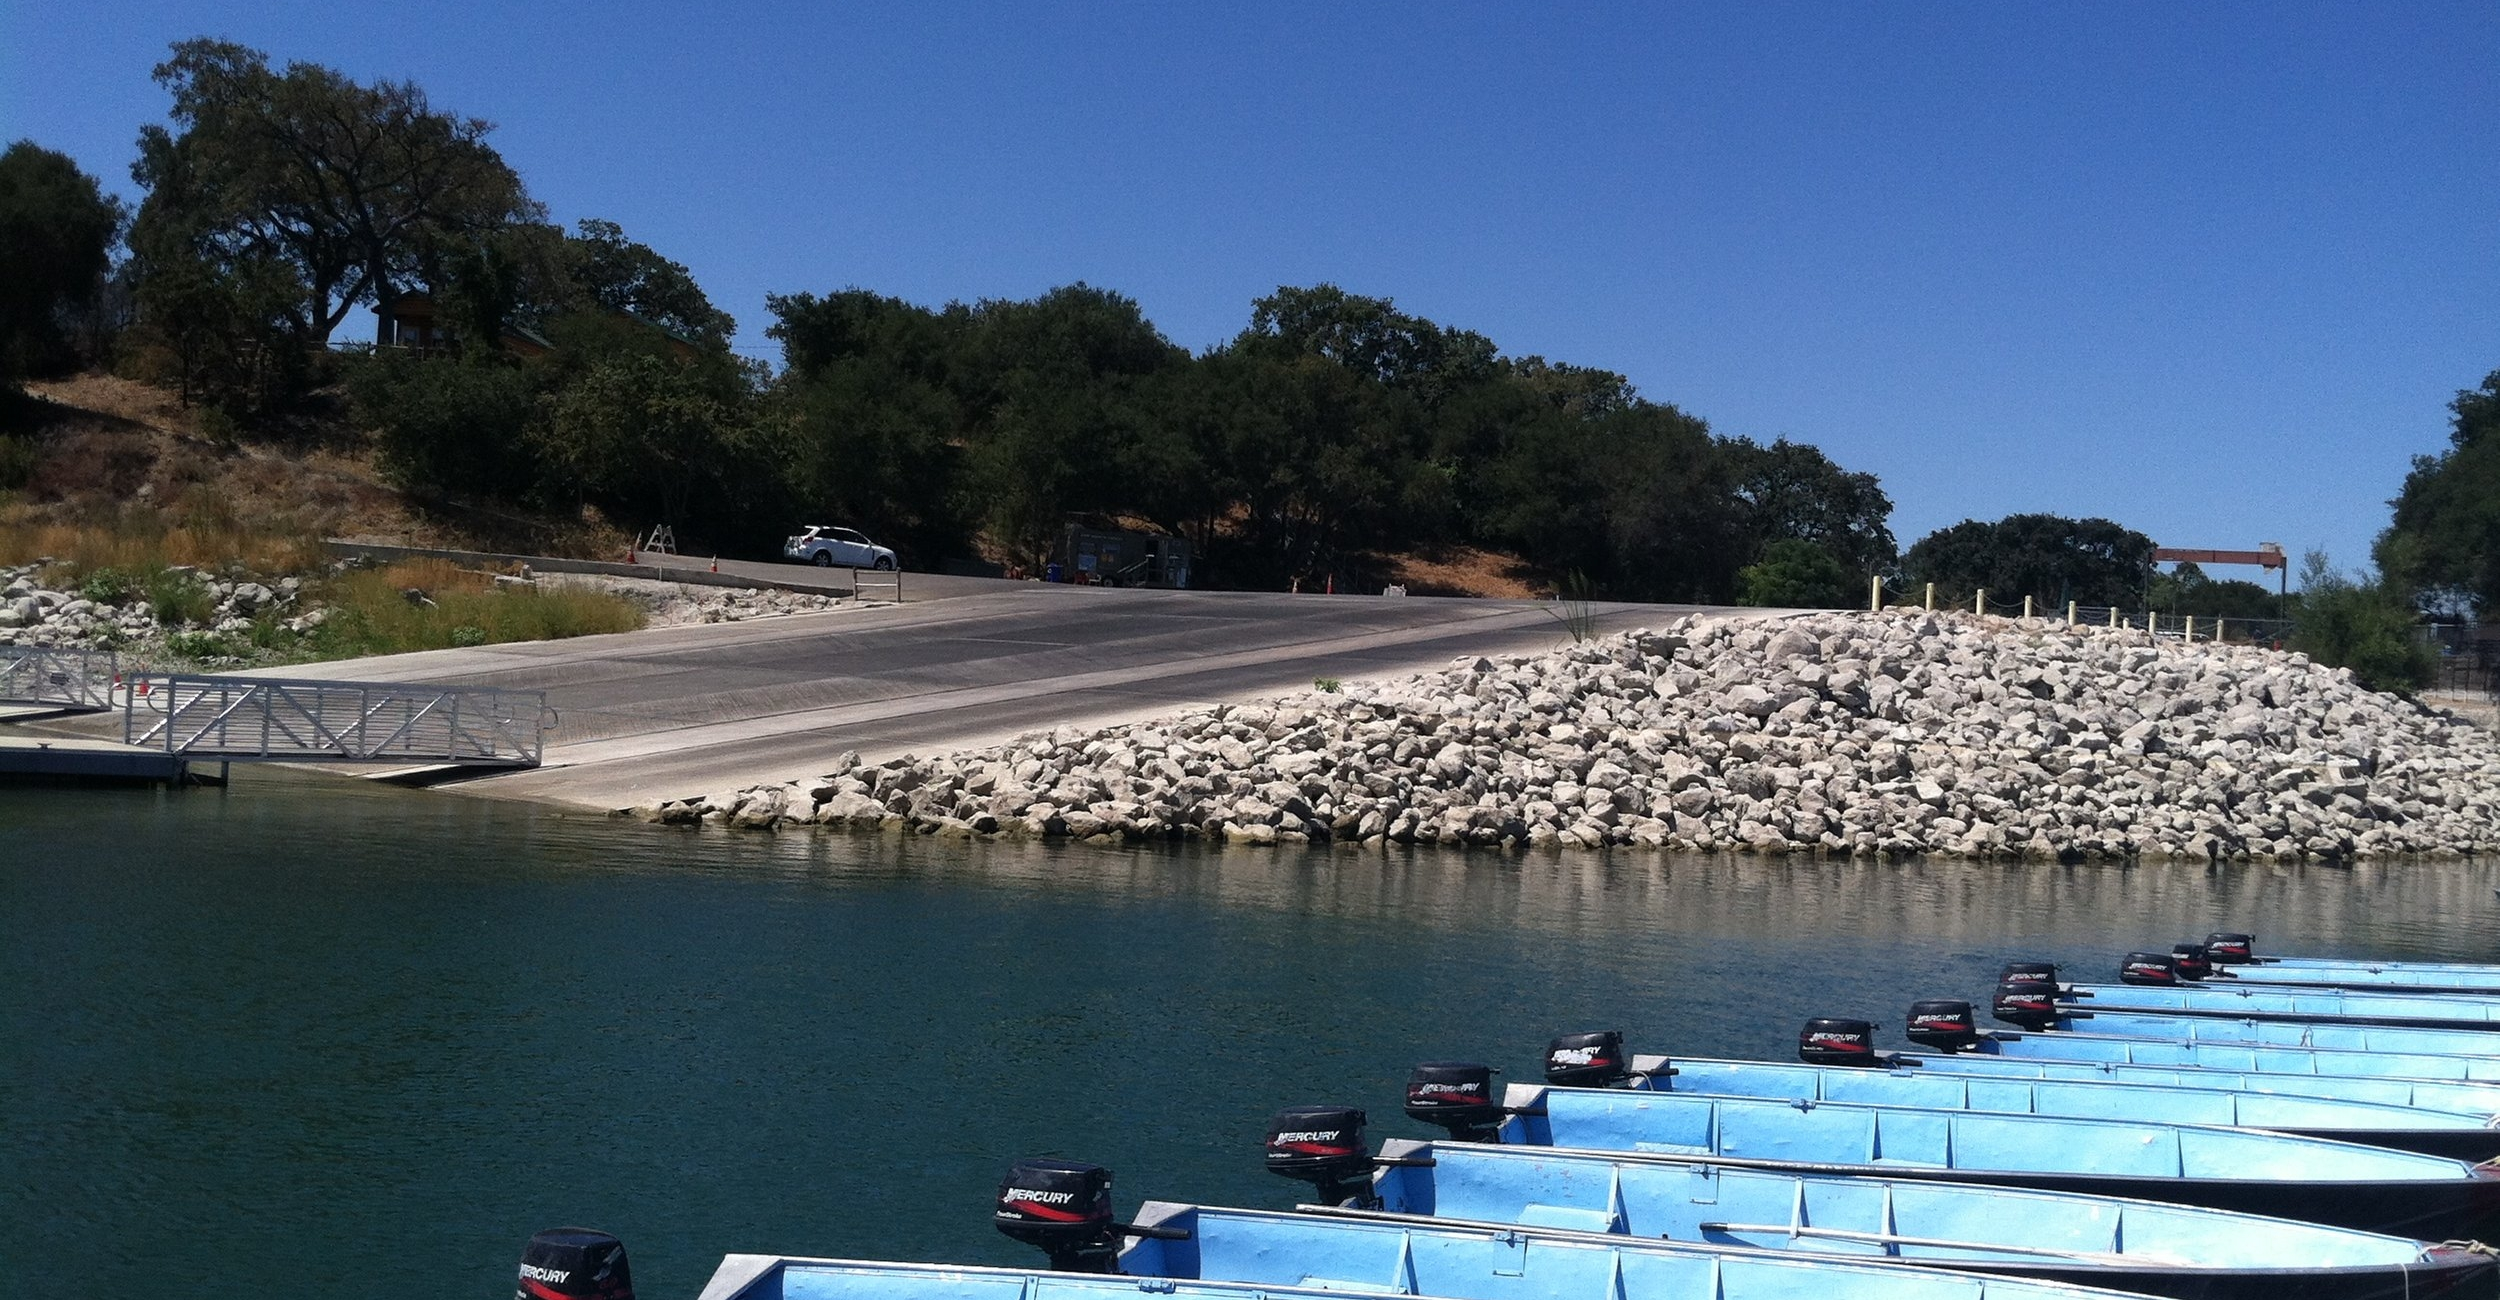 LAKE CACHUMA BOAT RAMP   The Lake Cachuma Boat Ramp project involved complete reconstruction of the boat ramp, parking lot improvements, access improvements from campground, fish-cleaning station and parking lot improvements.  Layout of Approach Road and Stairways  |  Layout of Parking Lot Spaces and Islands  |  Layout of Storm-water Drainage System  |  Location of Dock Anchors  |  Location of Rip-Rap  |  As-Built Survey  |  Quantity Calculations